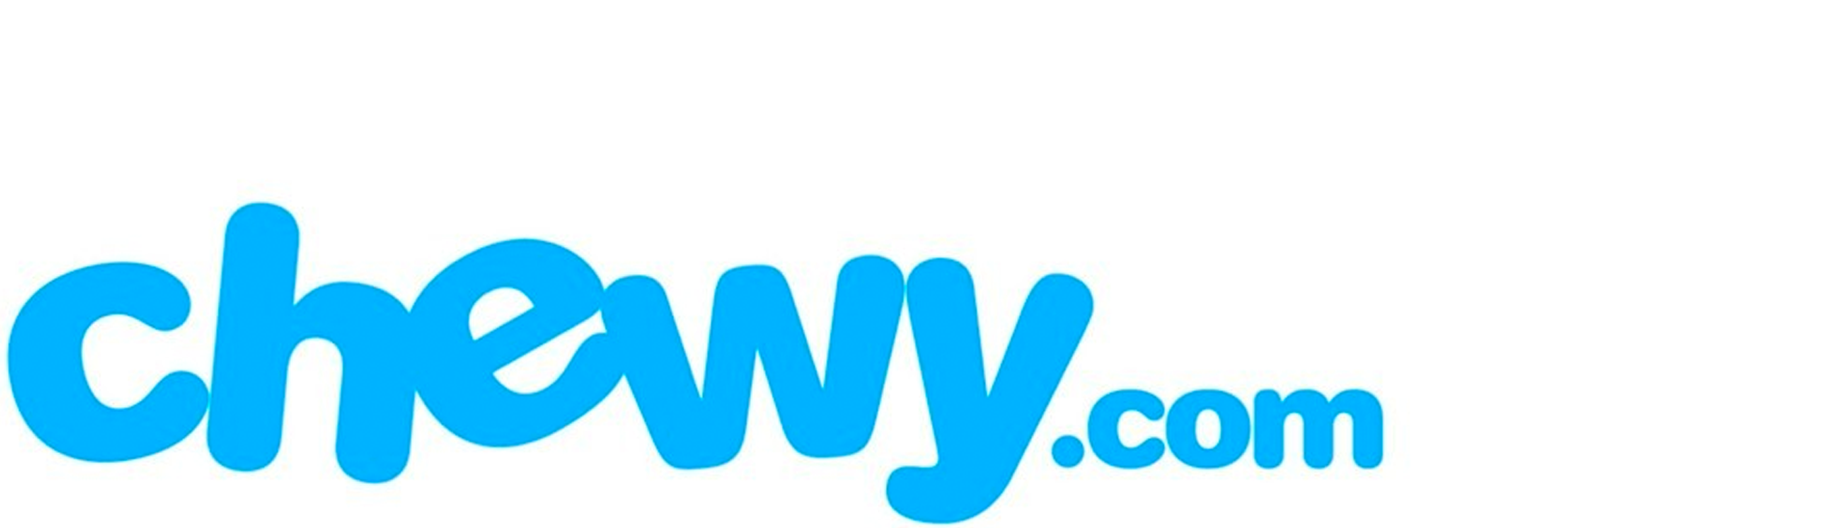 chewy-logo.png